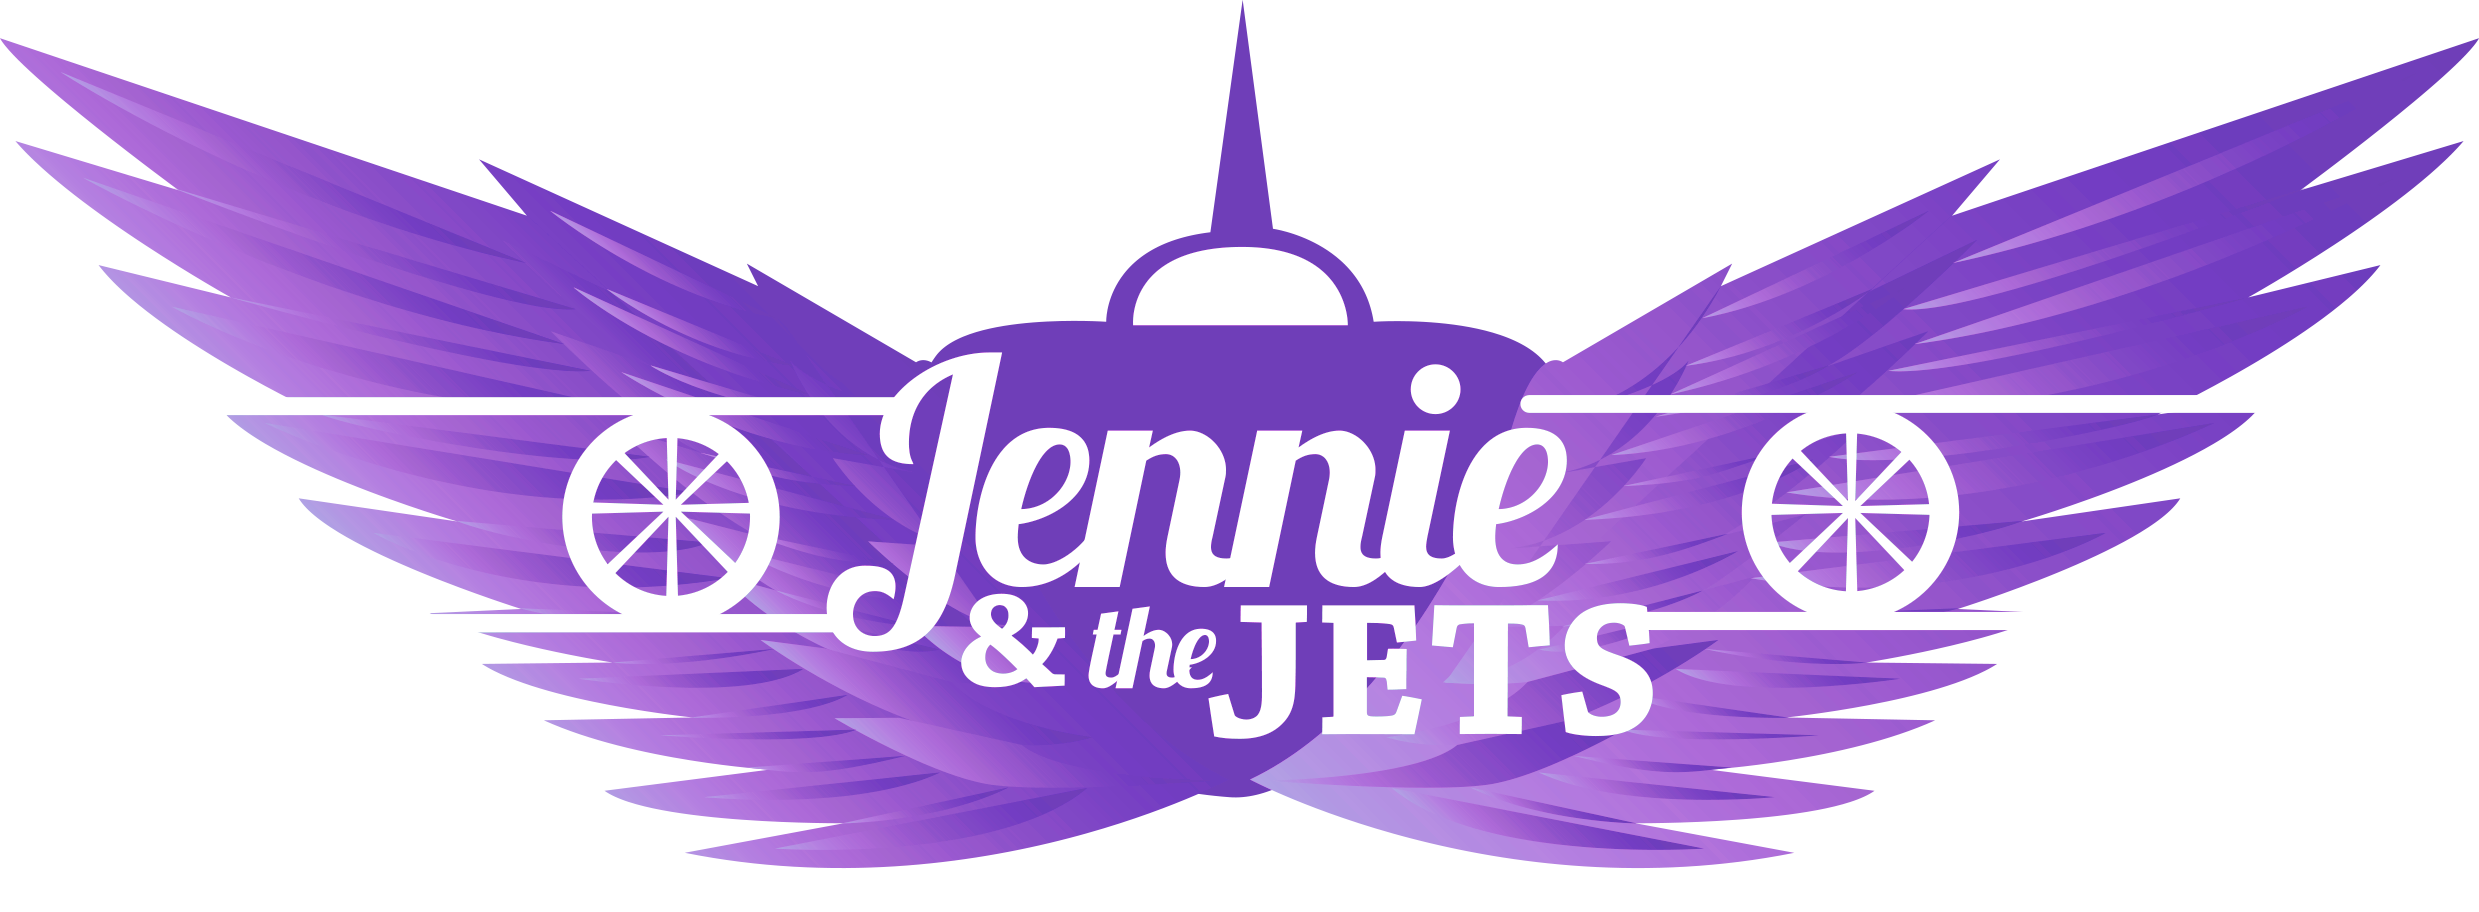 Jennie and the Jets Merchandise